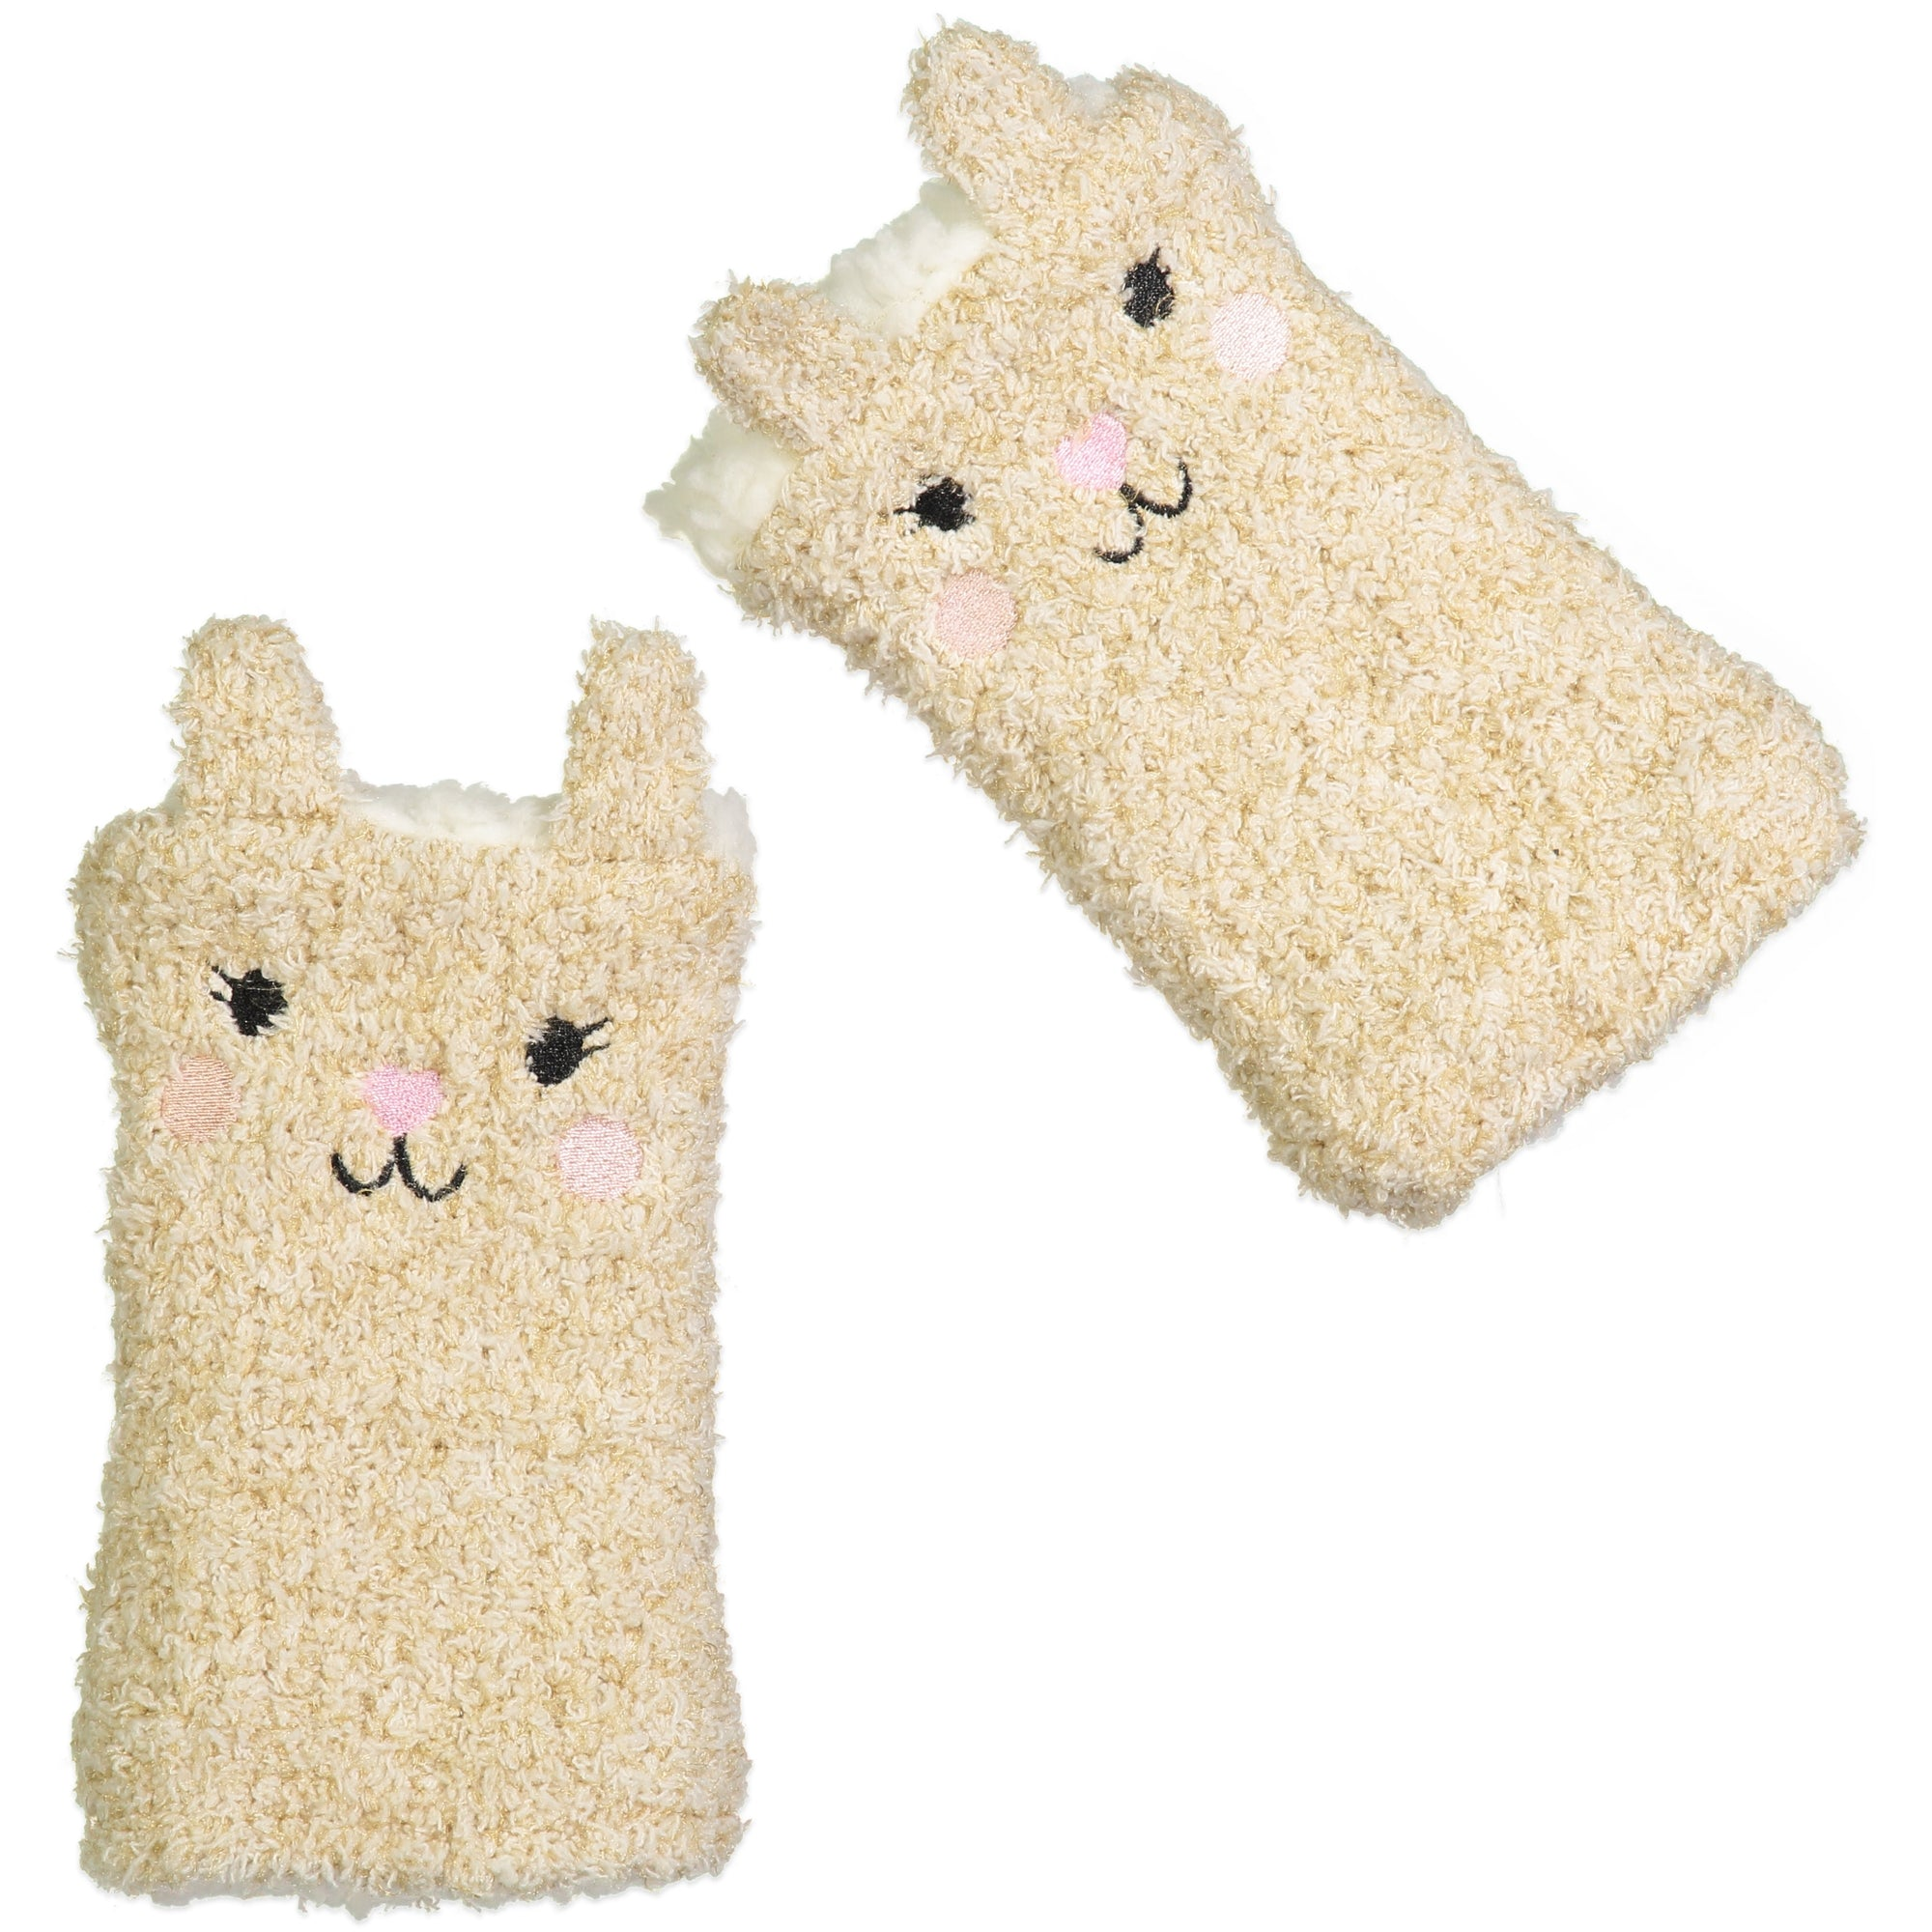 Women's Bunny Fingerless Gloves with Pop-up Ears